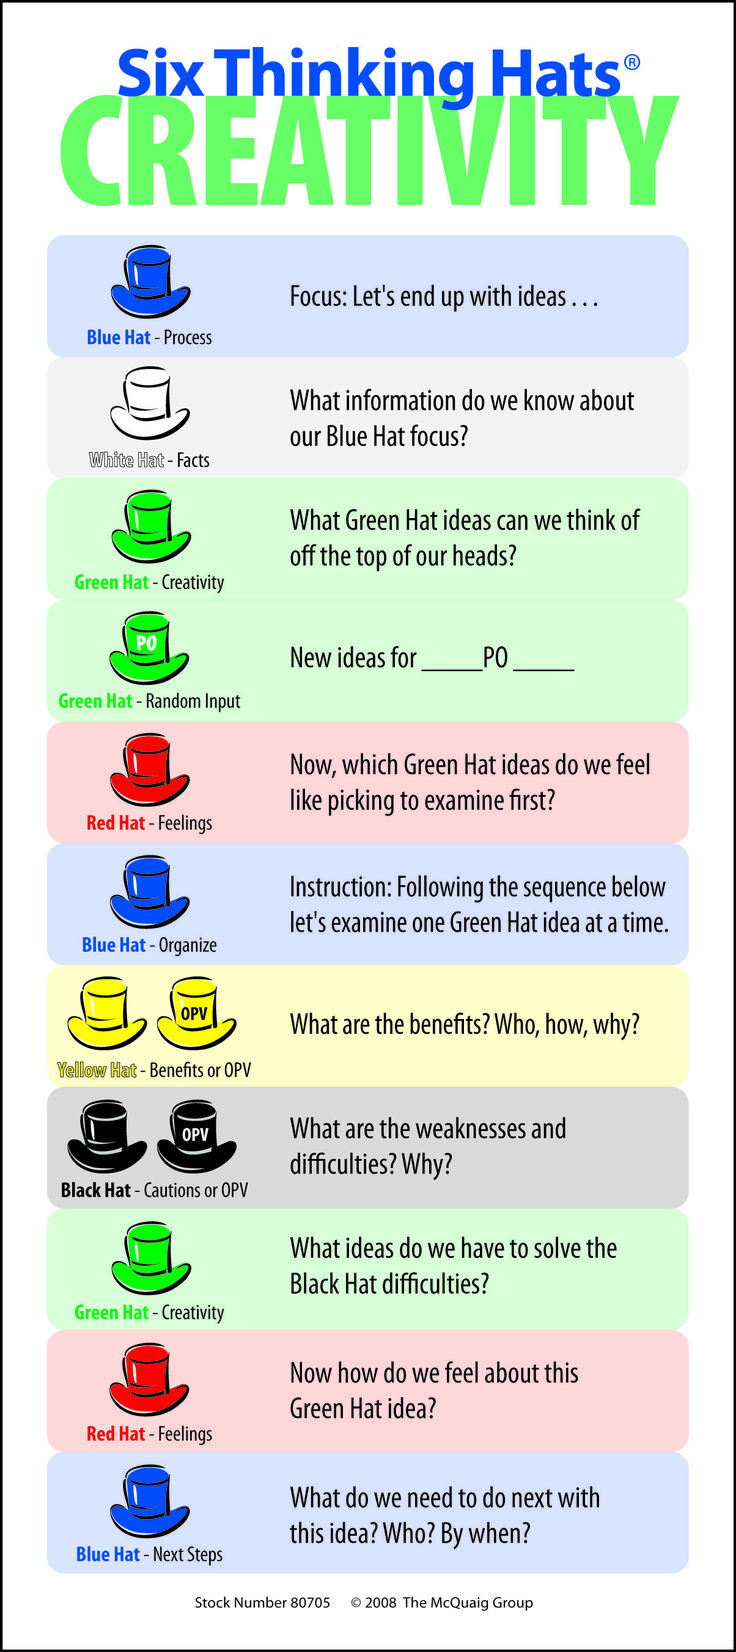 6 thinking hats This approach for using six thinking hats is lightweight and low-overhead, but gets you 80% there without requiring everybody to know the details of the six thinking hats.